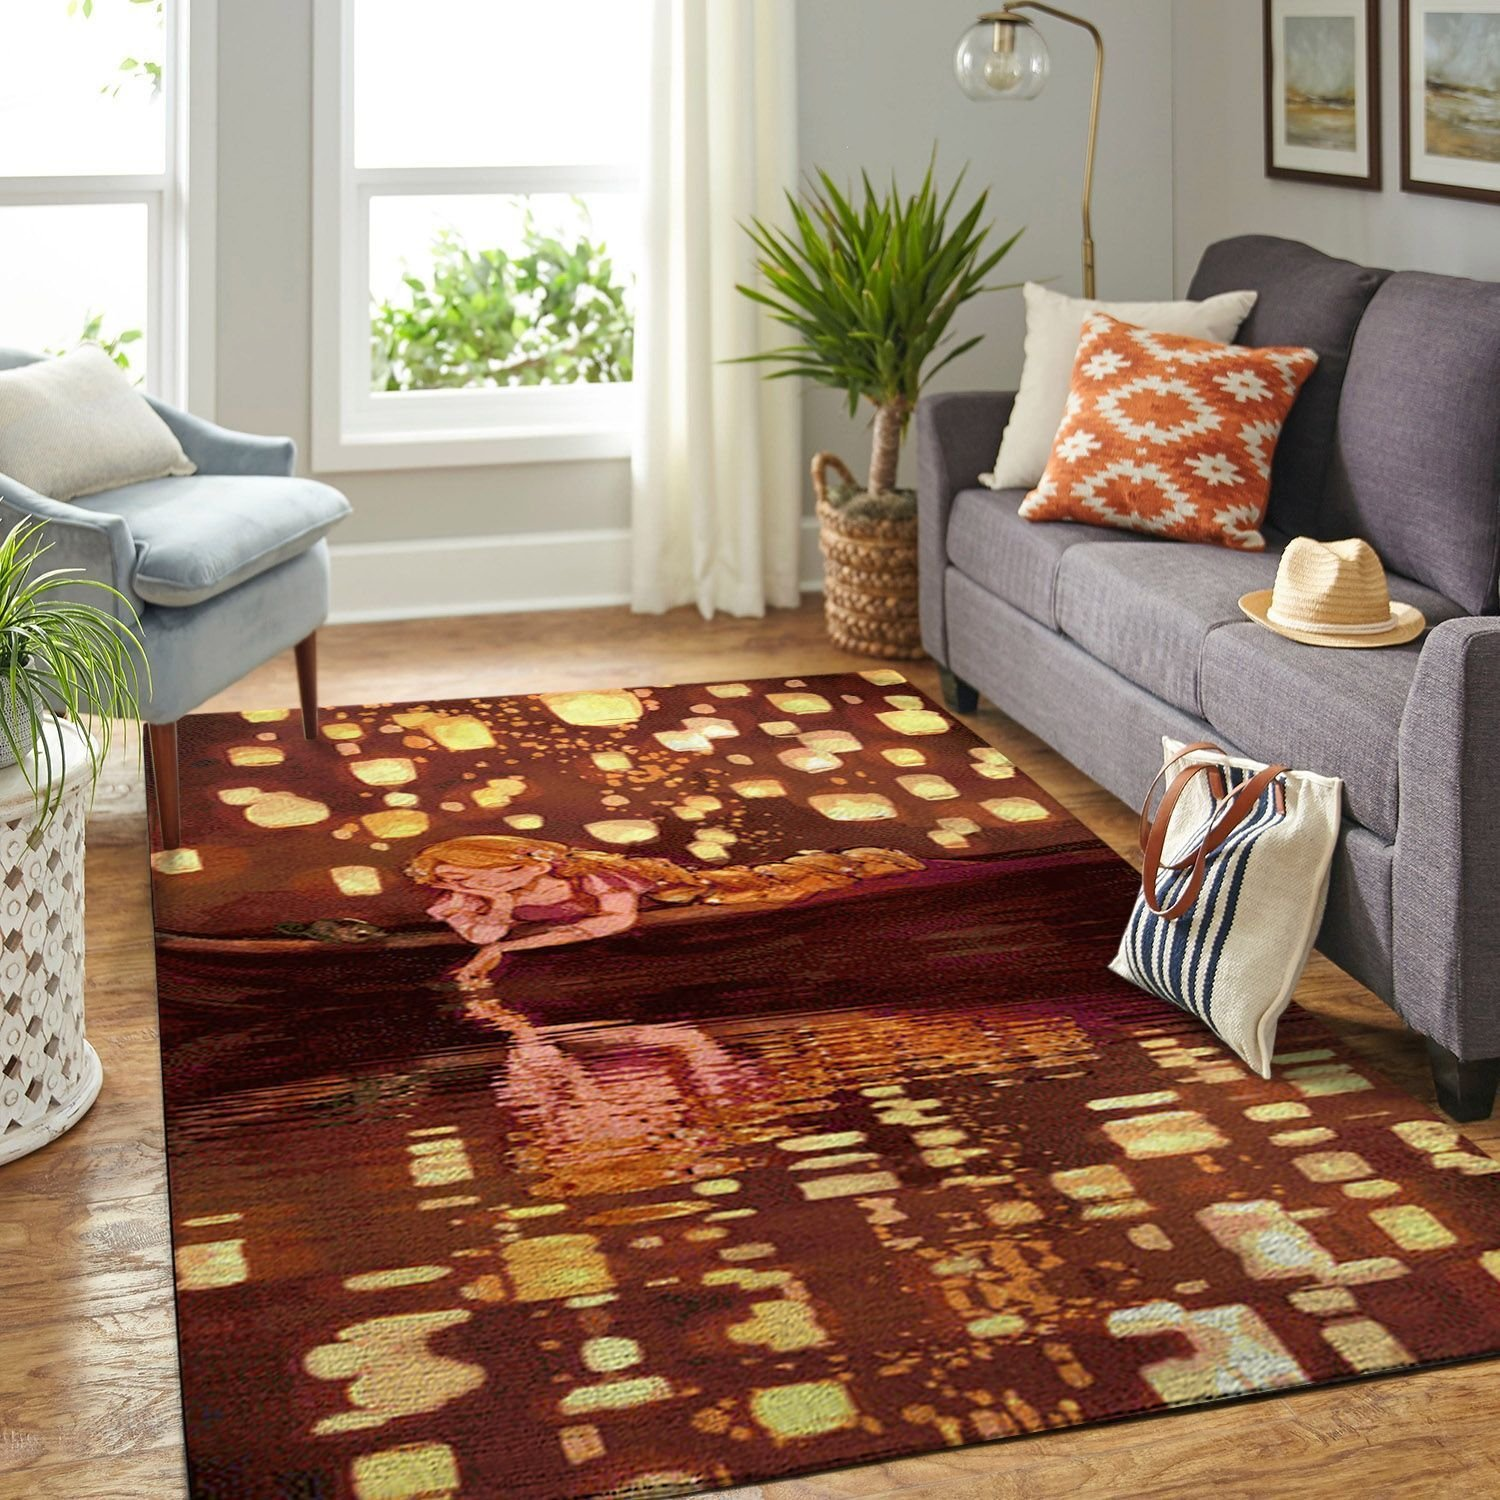 Amazon Tangled Disney Movie Living Room Area No6677 Rug